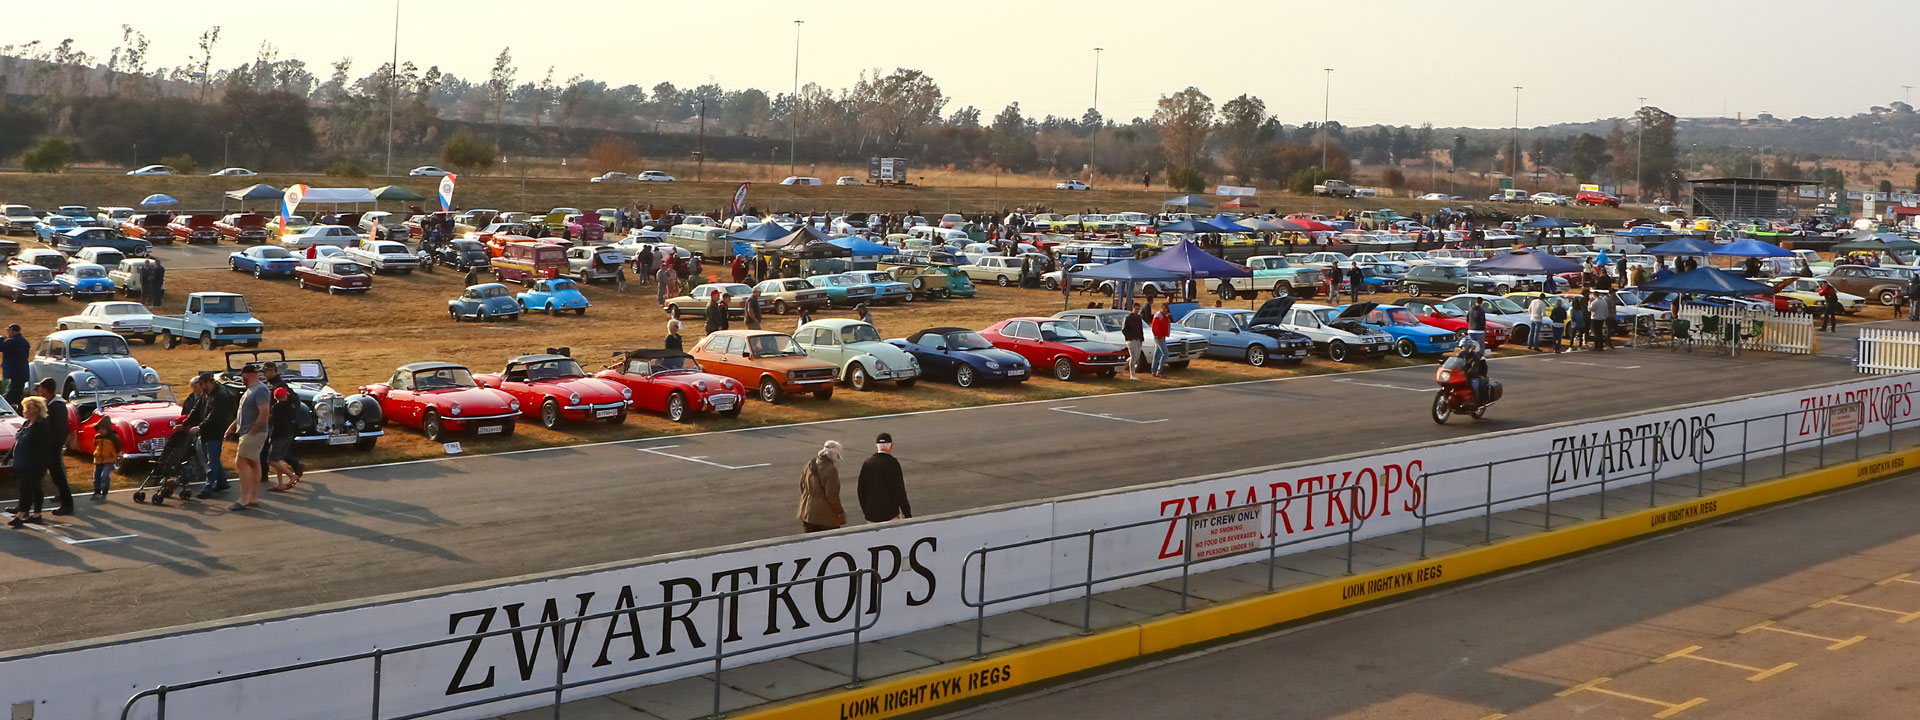 Participative Motoring is a major industry in South Africa which provides employment to over a 100000 people